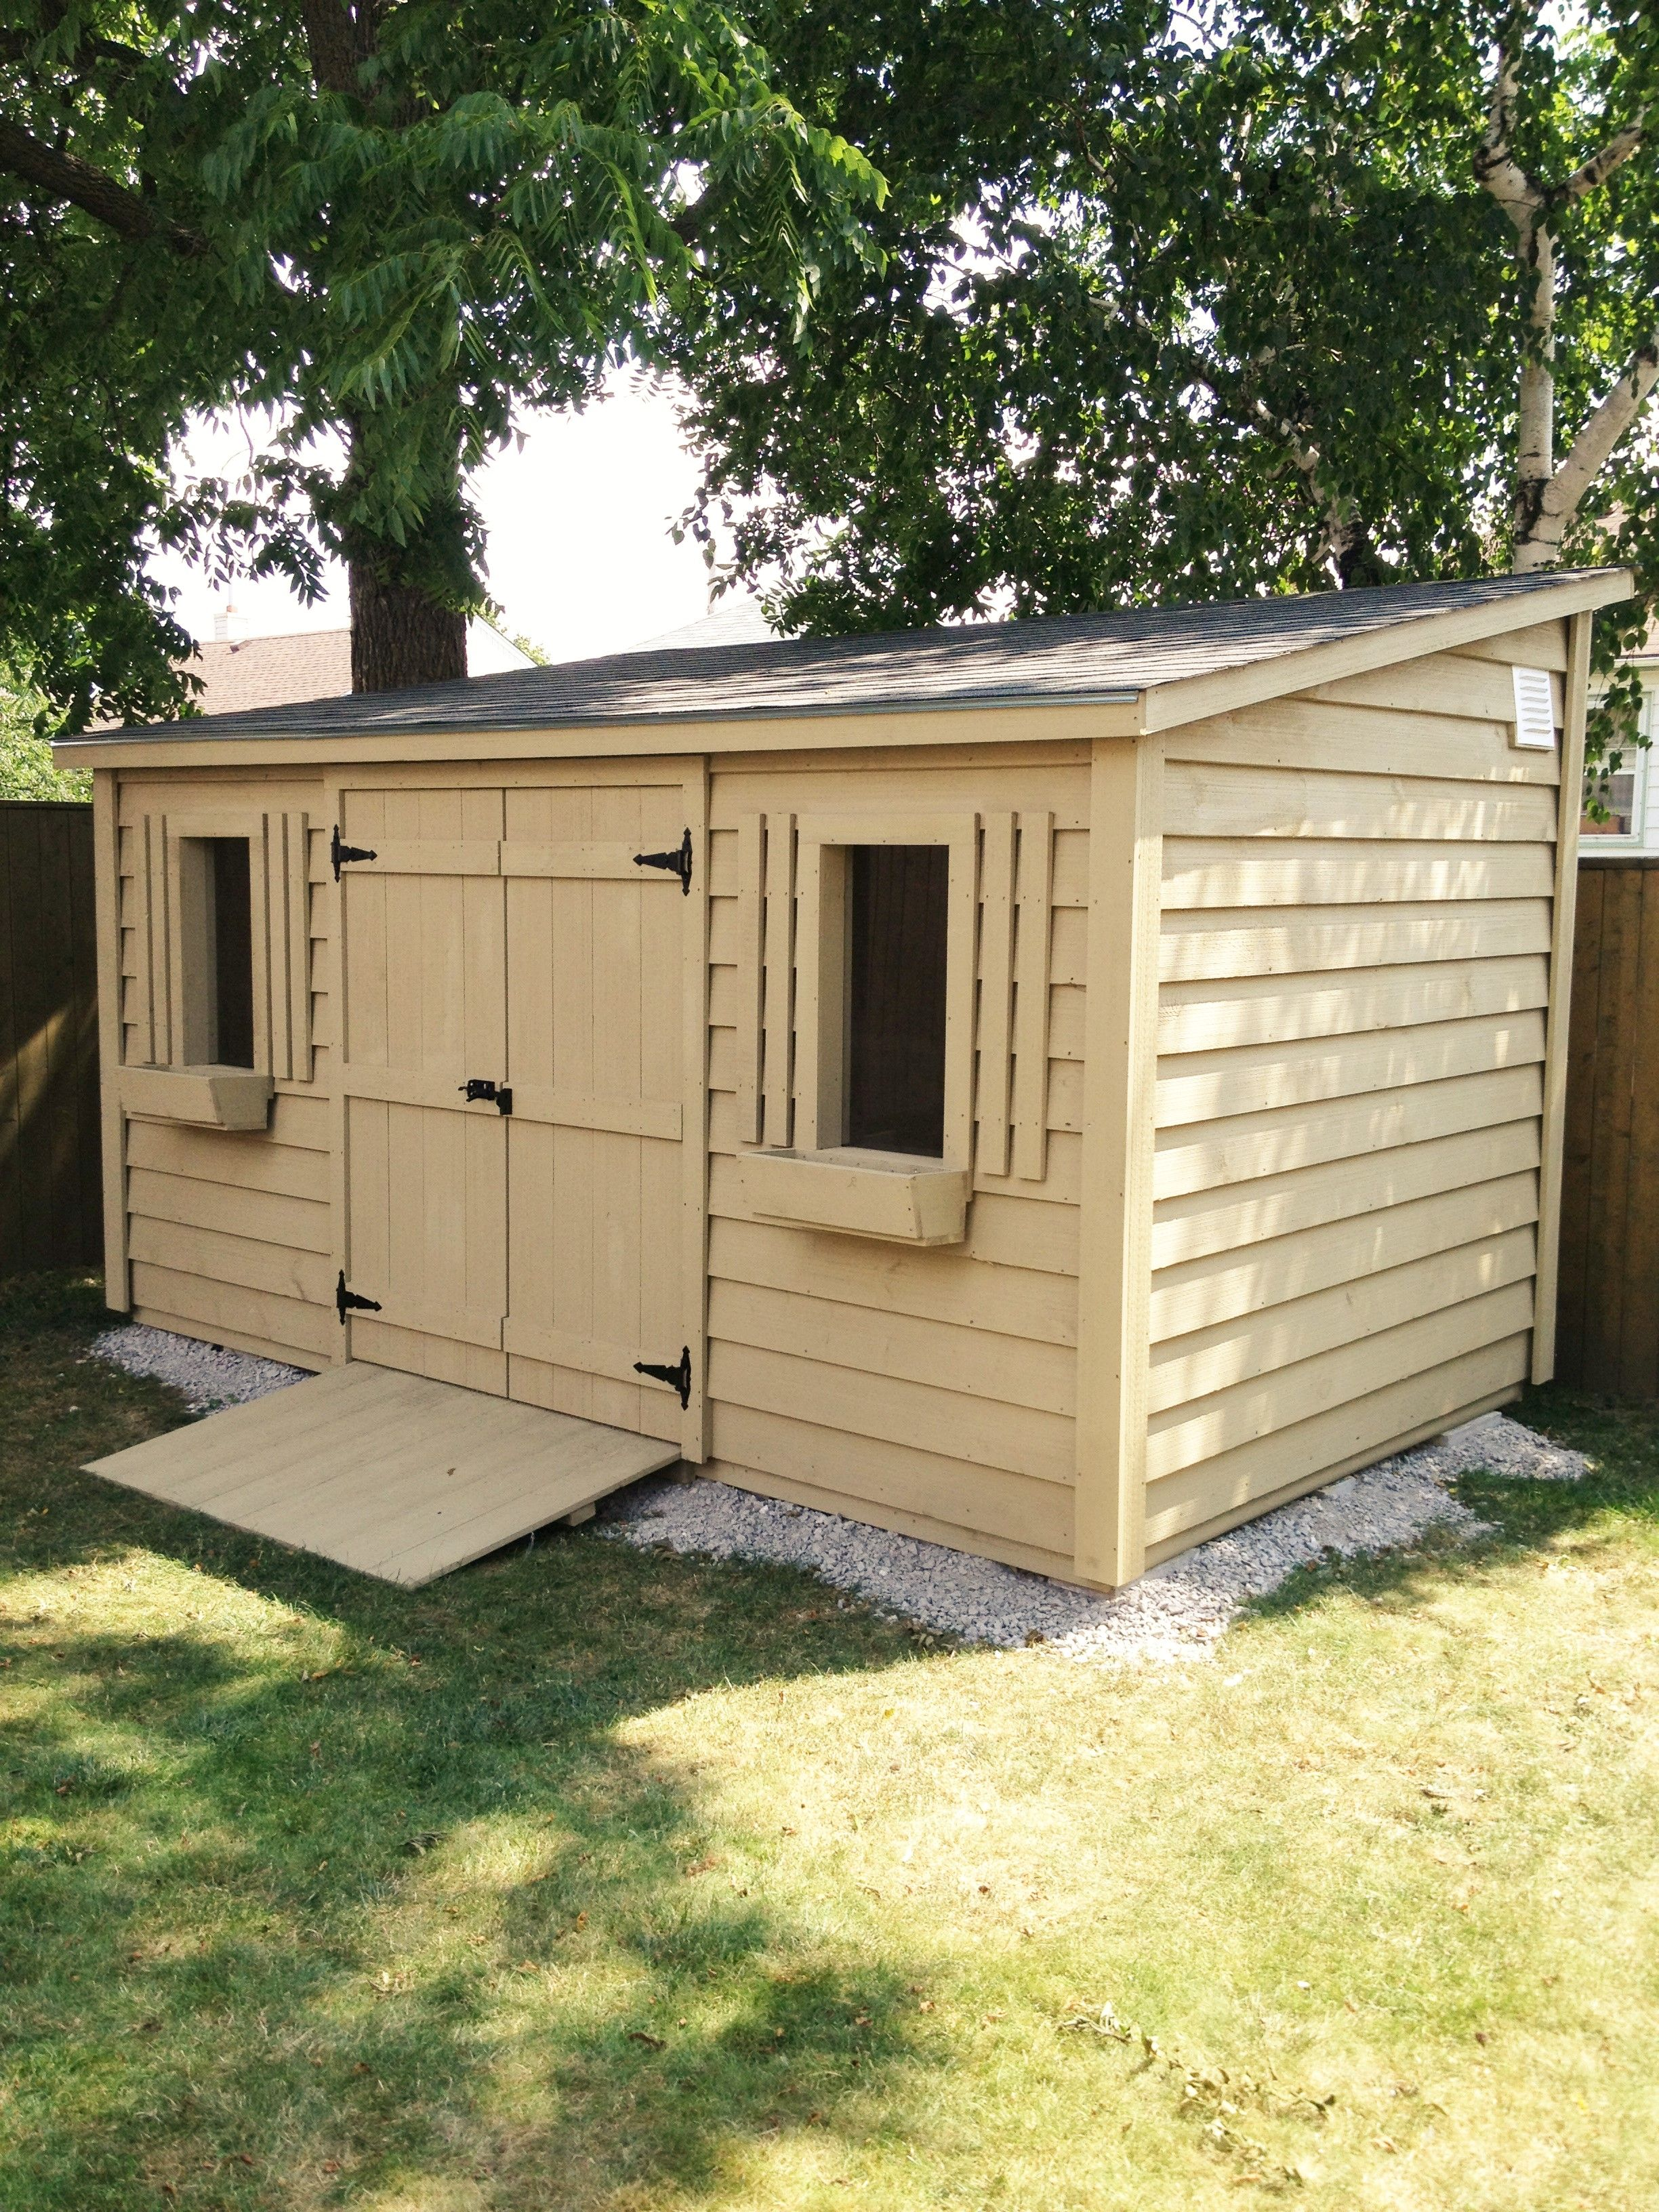 wood living sheds d outdoor shed w santa creative today suncast ft cabinets rosa outside x storage